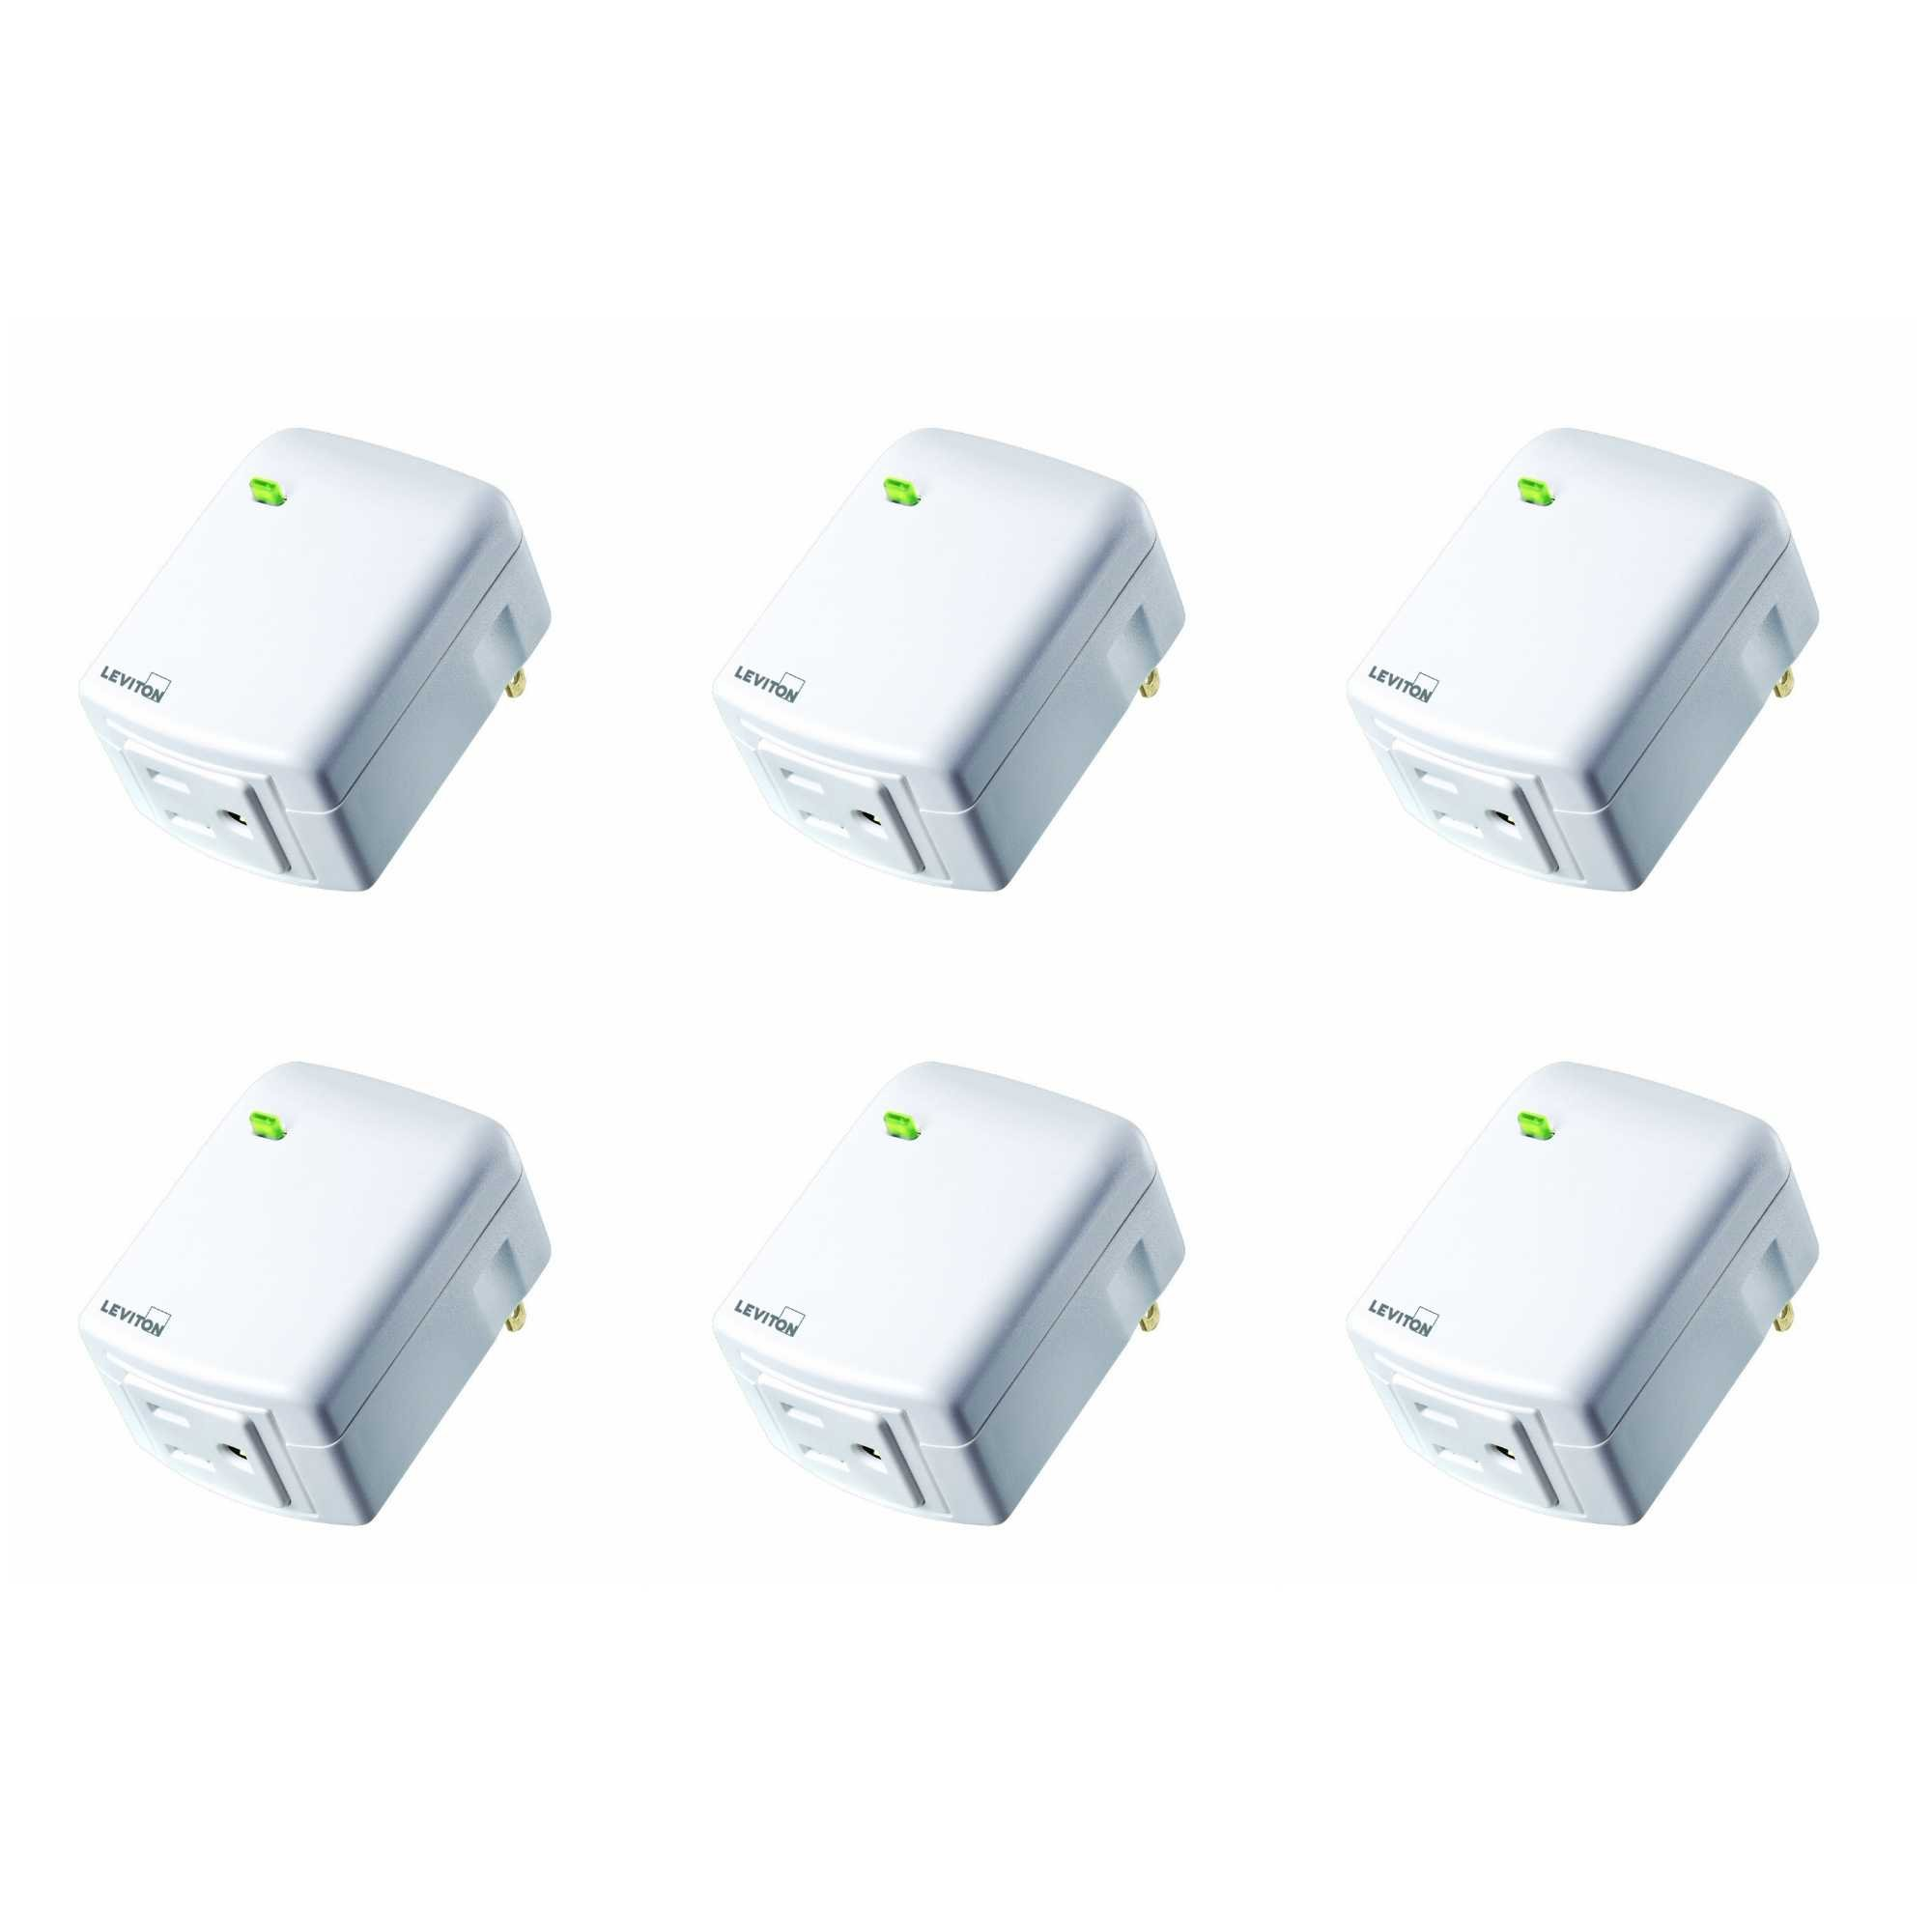 Leviton DW15A-1BW Decora Smart Wi-Fi Plug-in Outlet, Works with Amazon Alexa, No Hub Required (6 Pack)